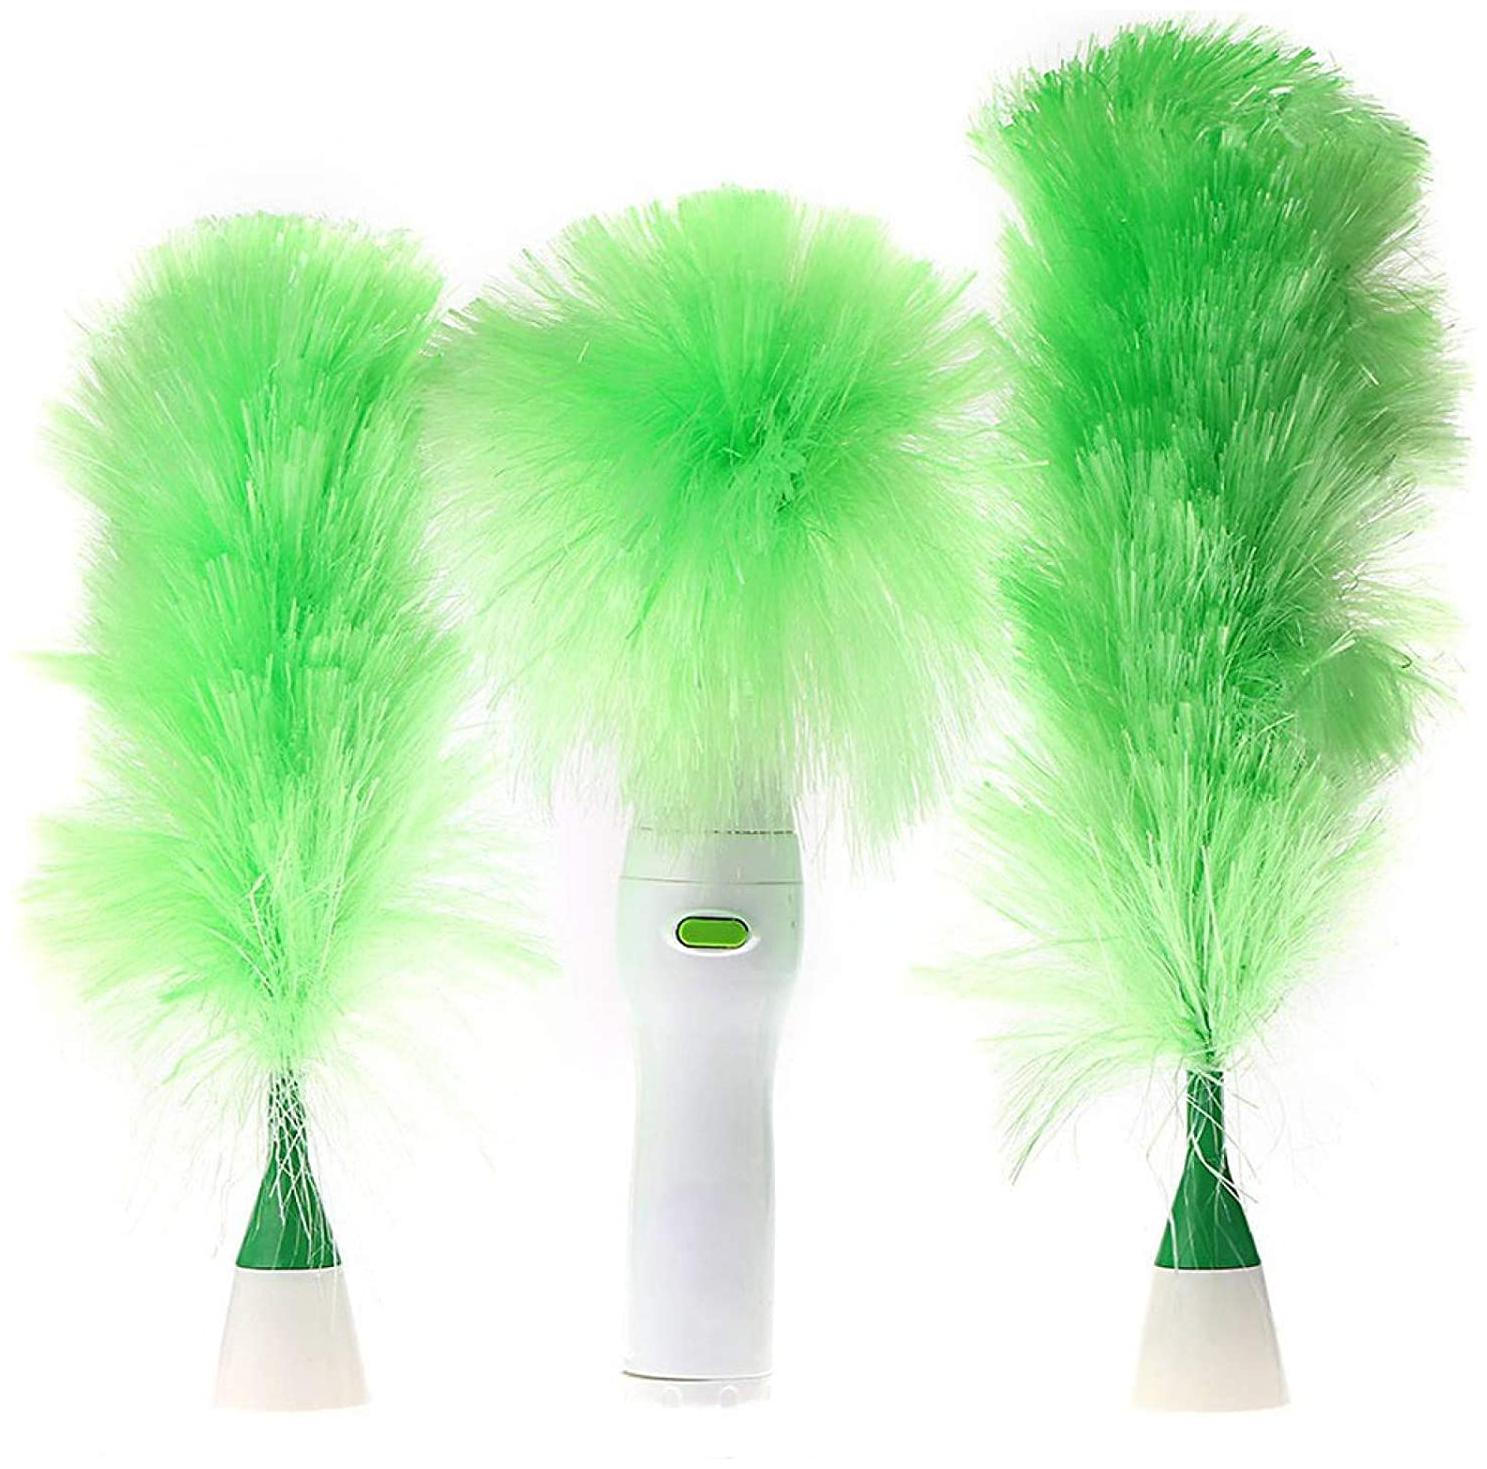 Misaki Holding Feather & Hand-Held Grabbing Spin Duster with Blinds Dust Cleaning...